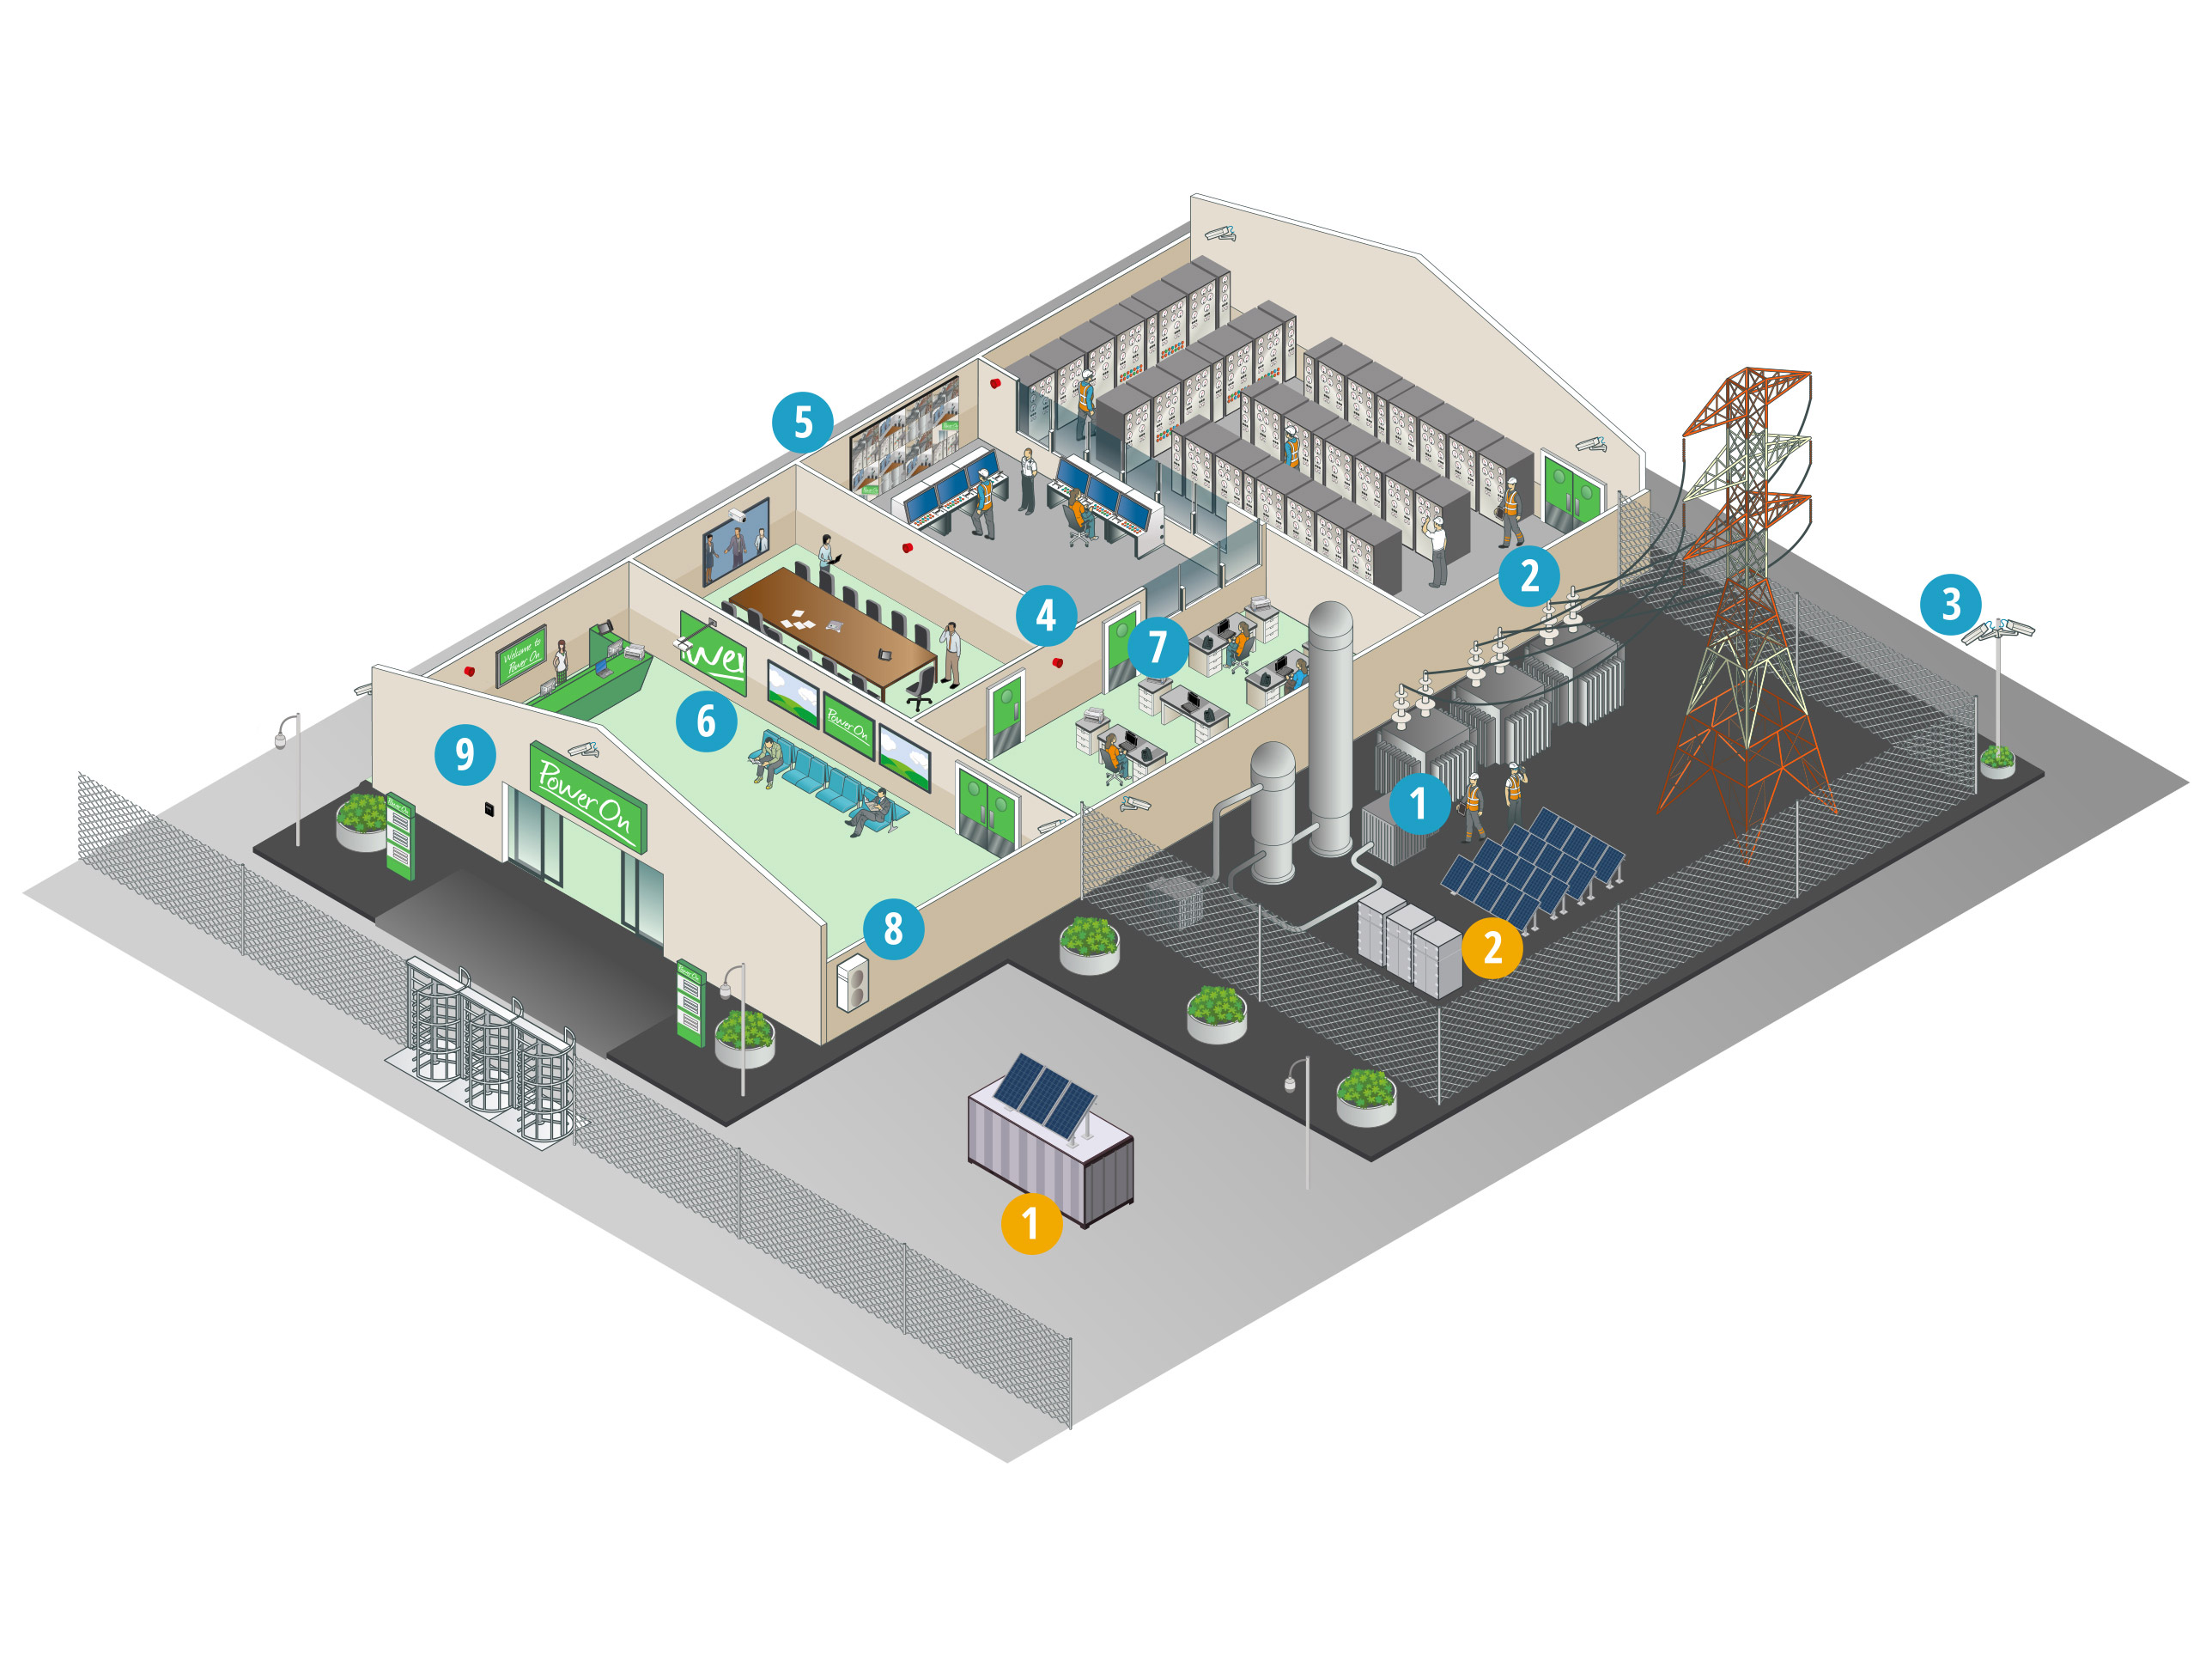 How do Panasonic solutions support the utilities sector?